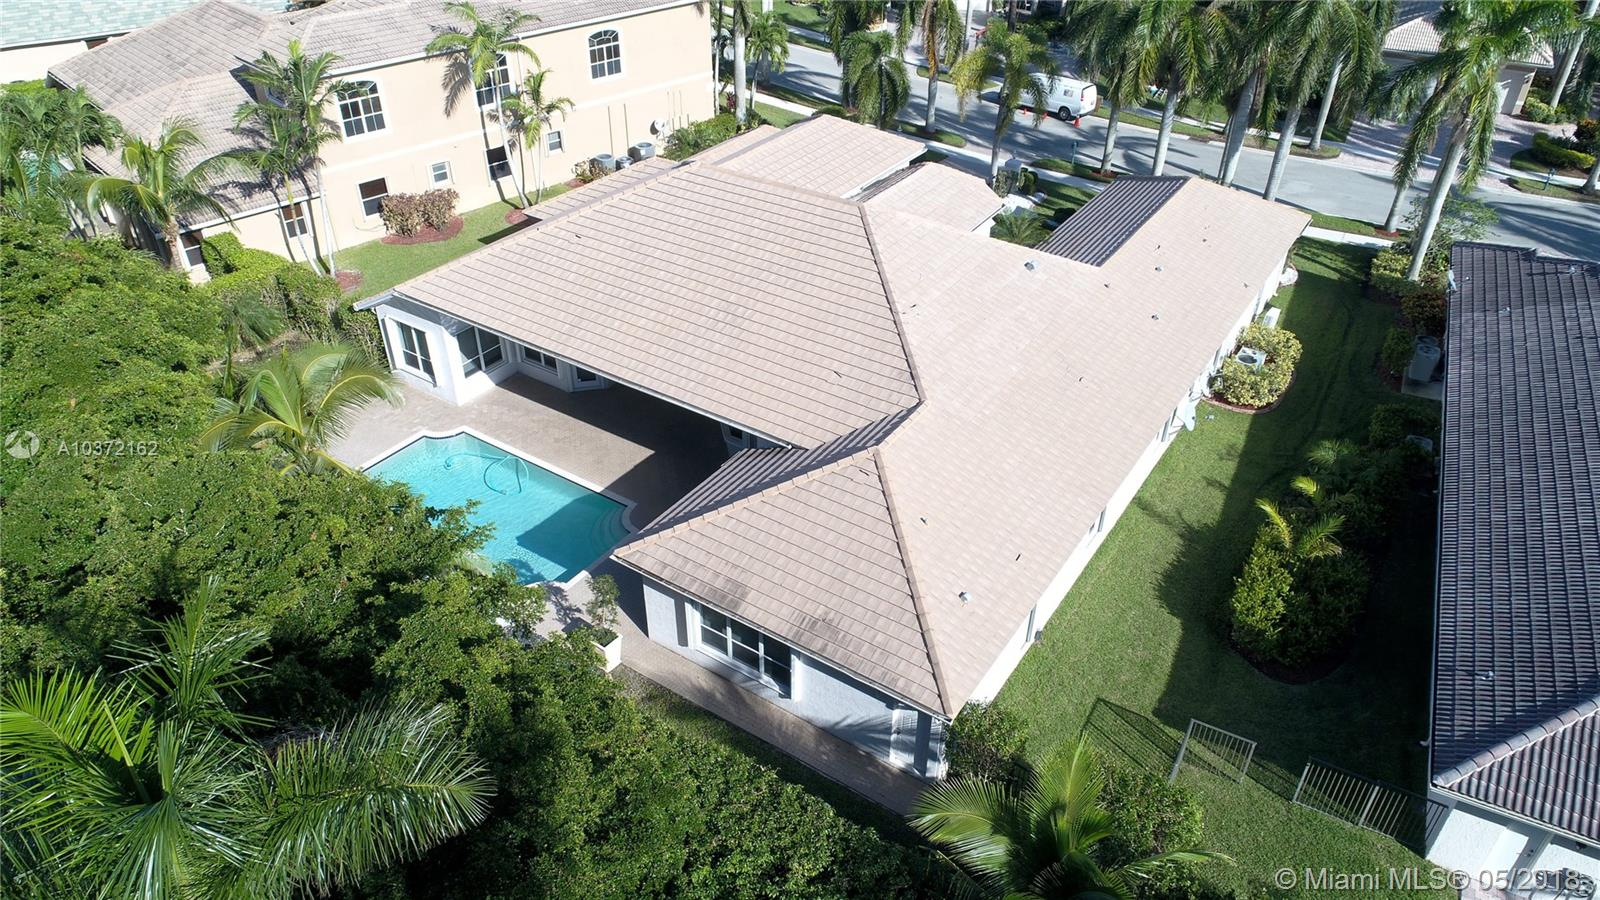 2503 Provence Cir, Weston FL, 33327